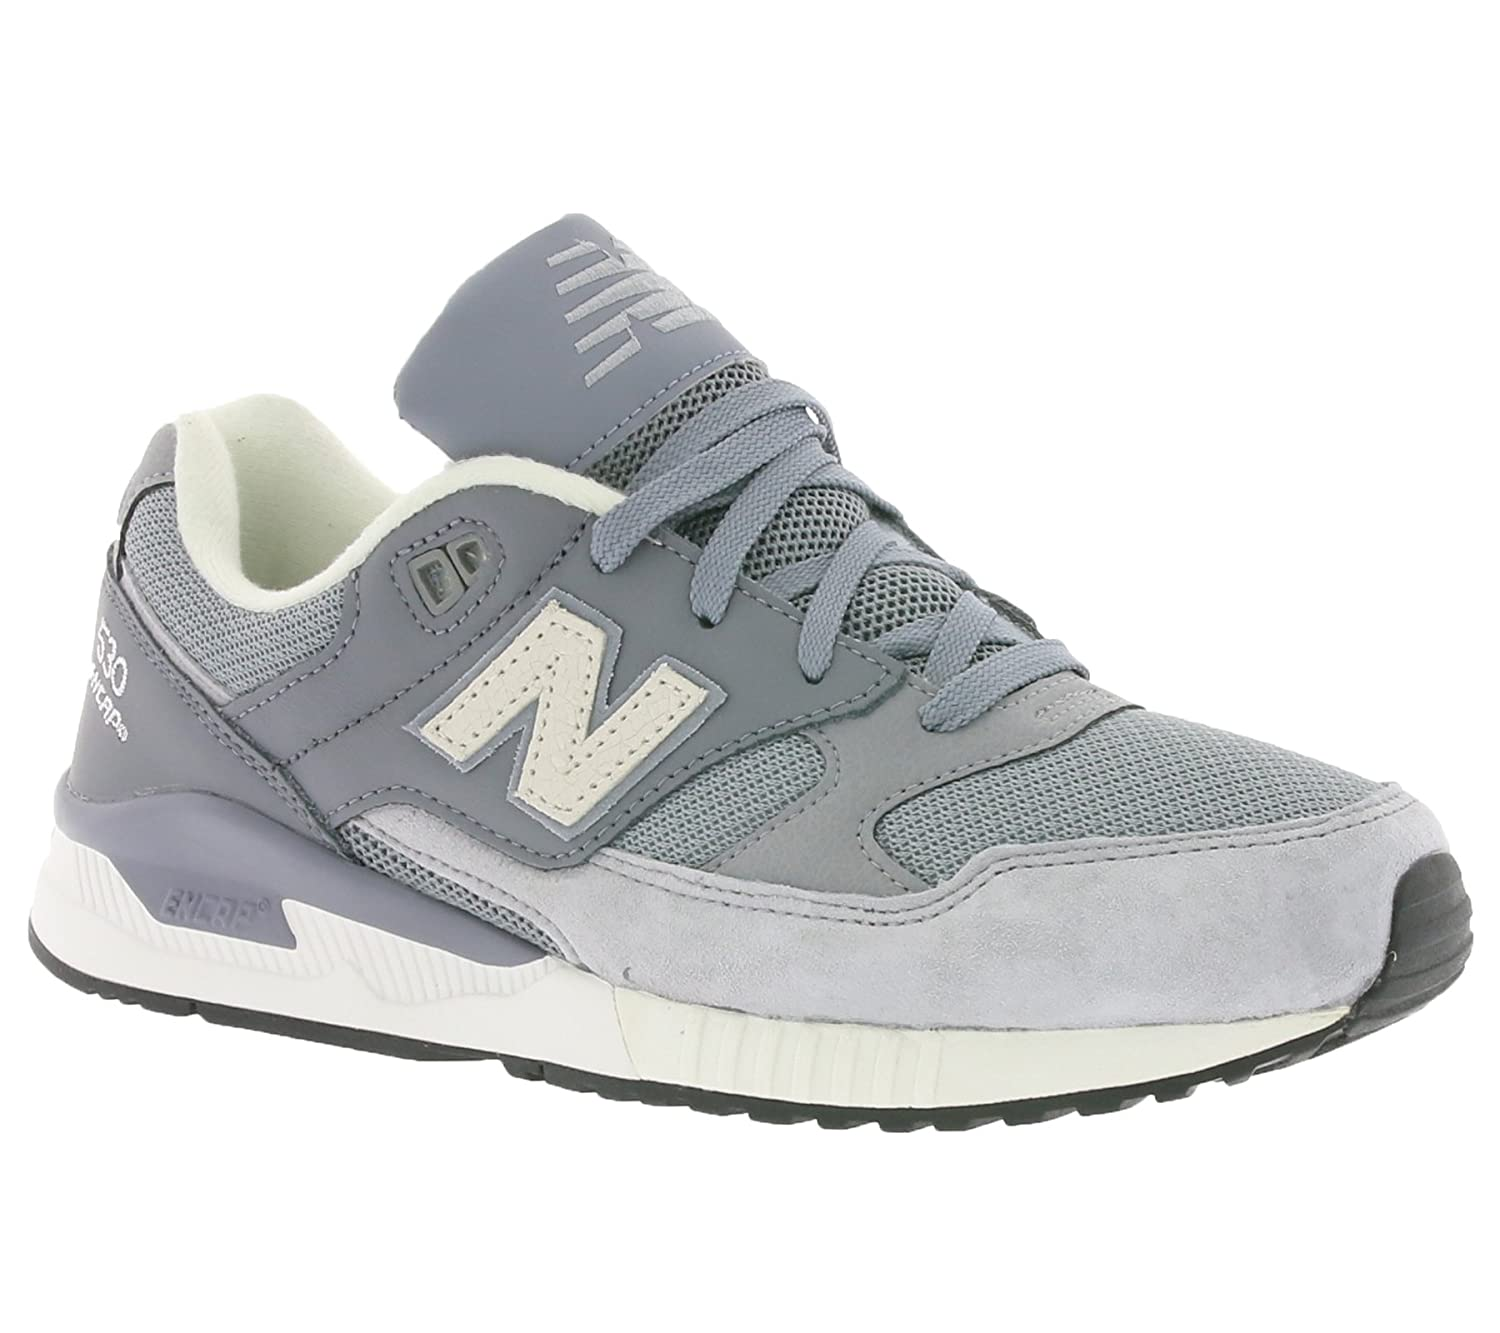 huge selection of 6a532 a19d1 New Balance M530, OXC steel: Amazon.co.uk: Shoes & Bags